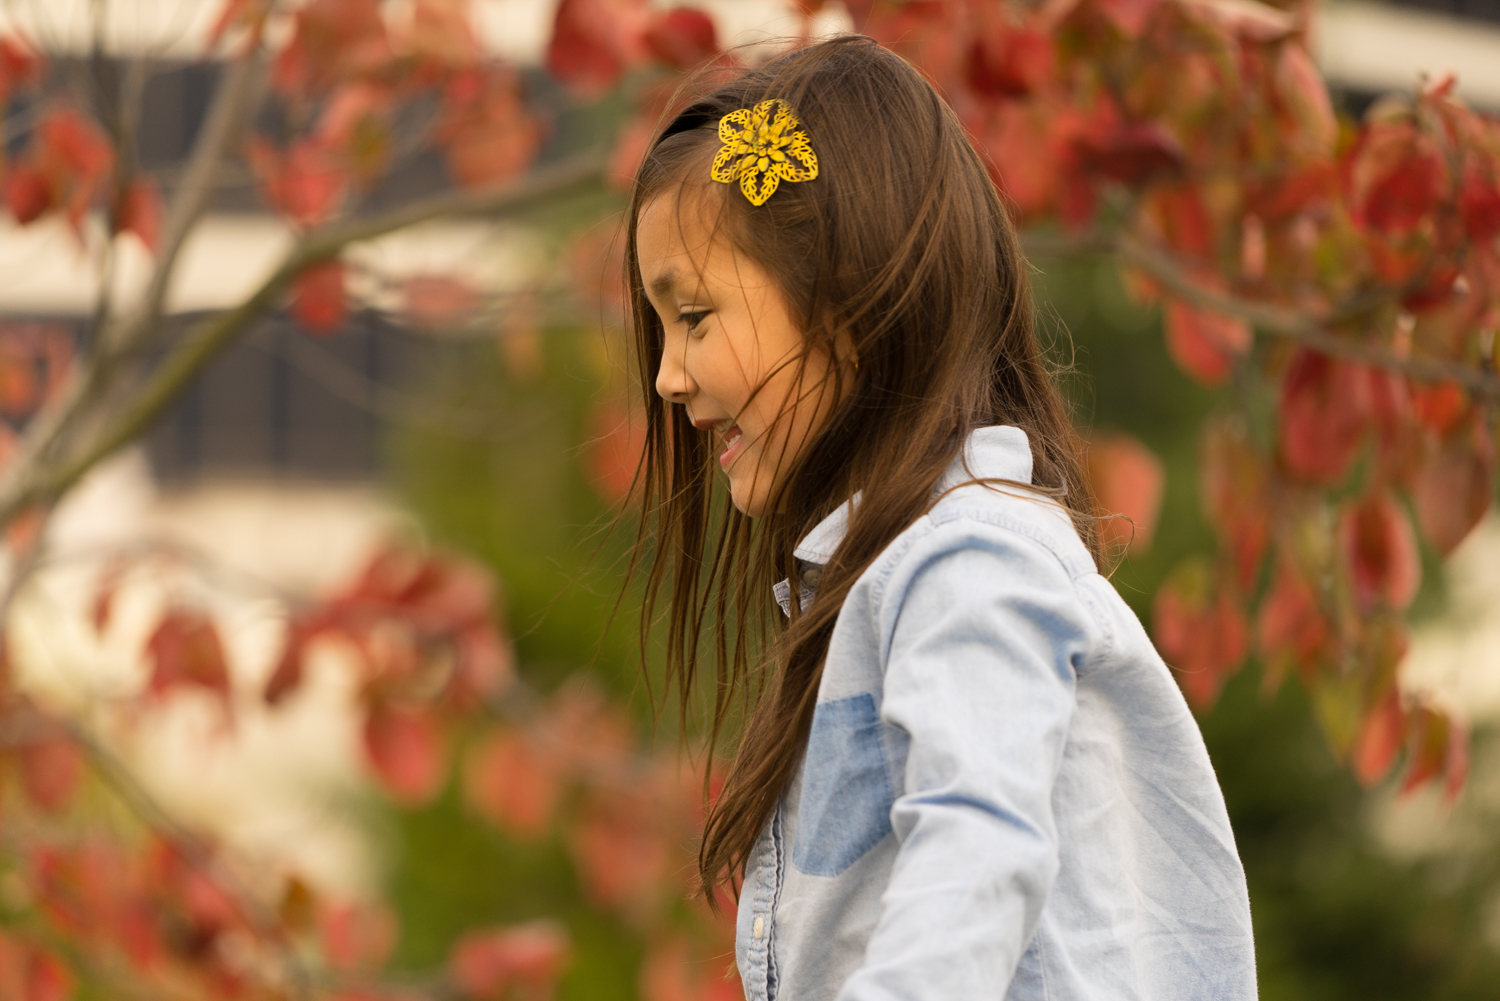 10 year old girl playing in Autumn-Danville lifestyle photographer